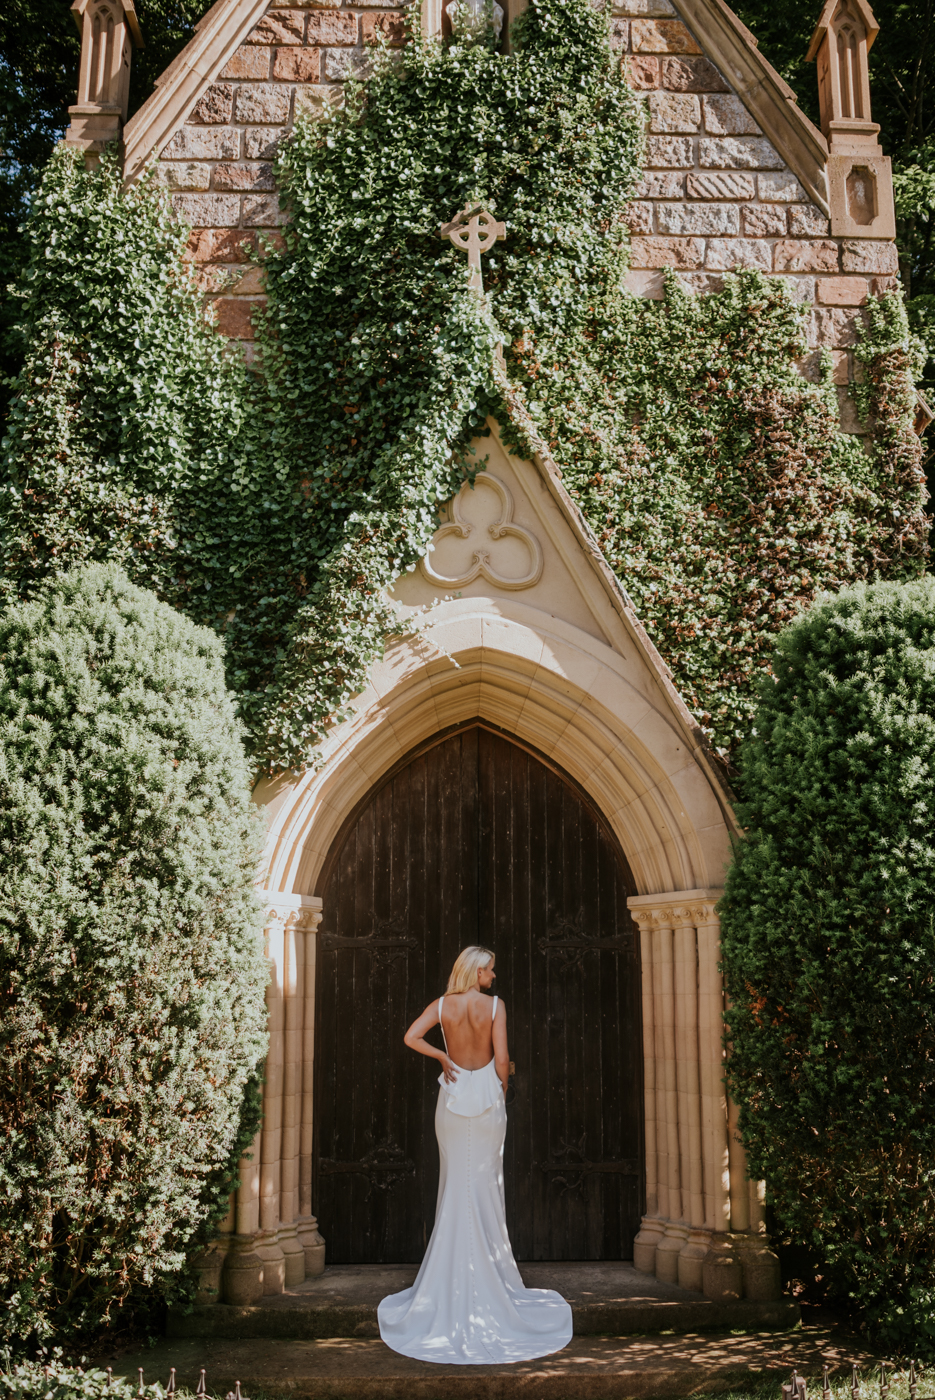 Sierra+Jacob.Wedding.Blog©mileswittboyer.com2018-67.jpg